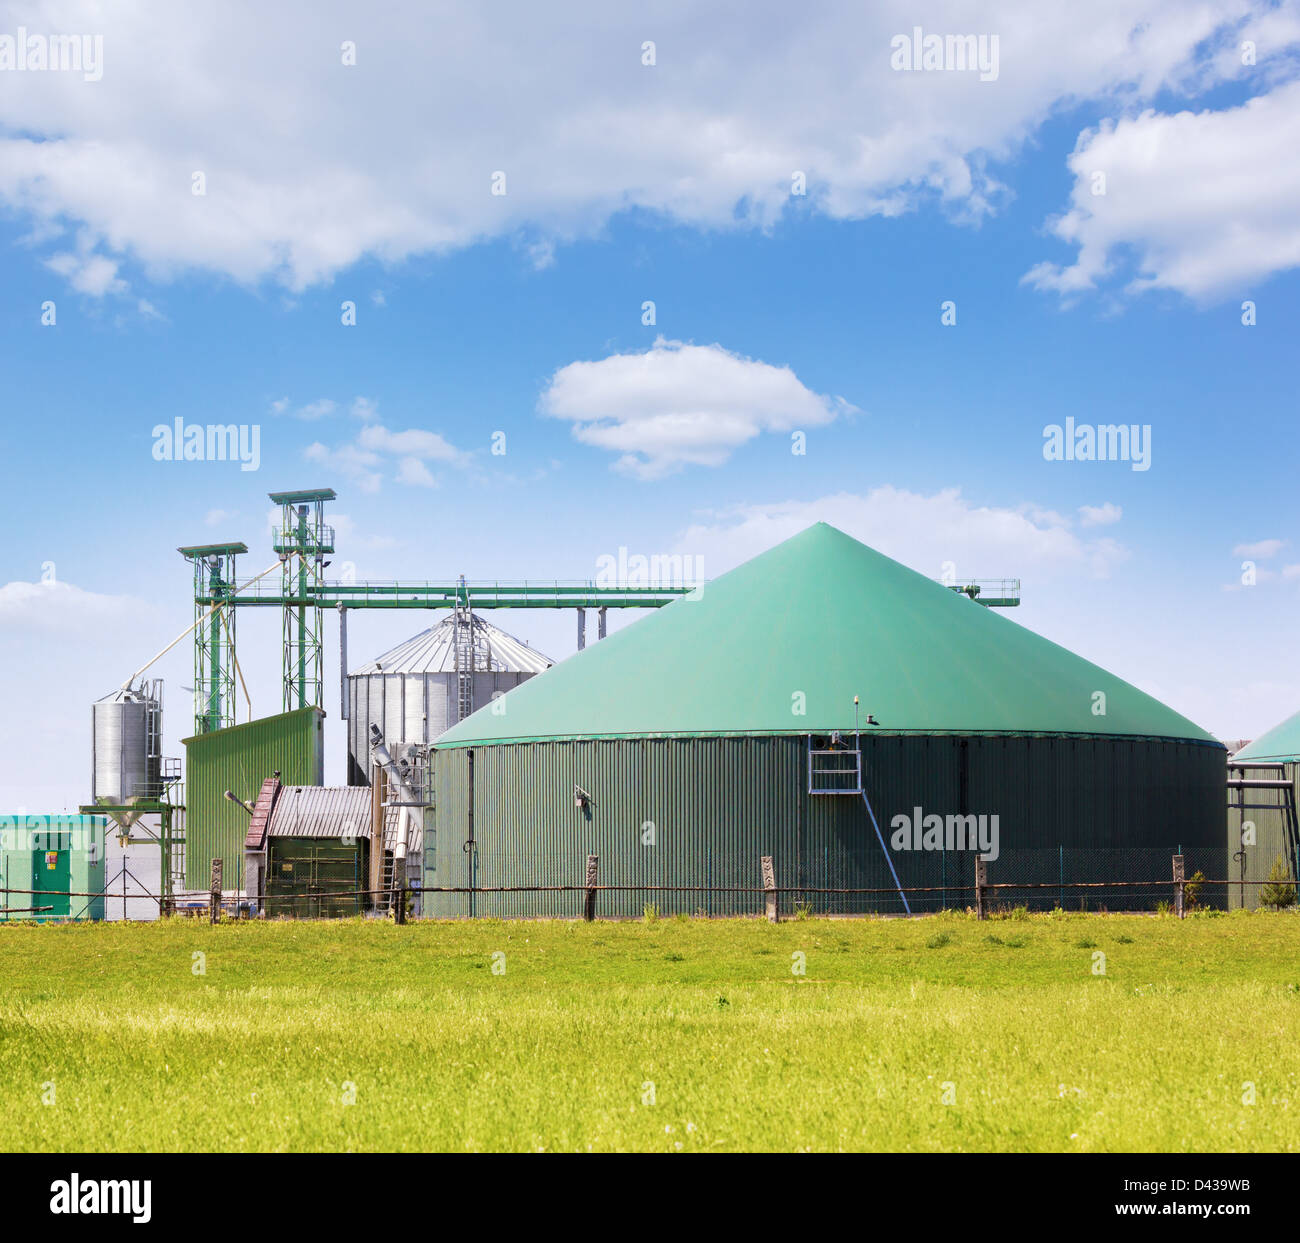 Biogas Digester Stock Photos & Biogas Digester Stock Images - Alamy